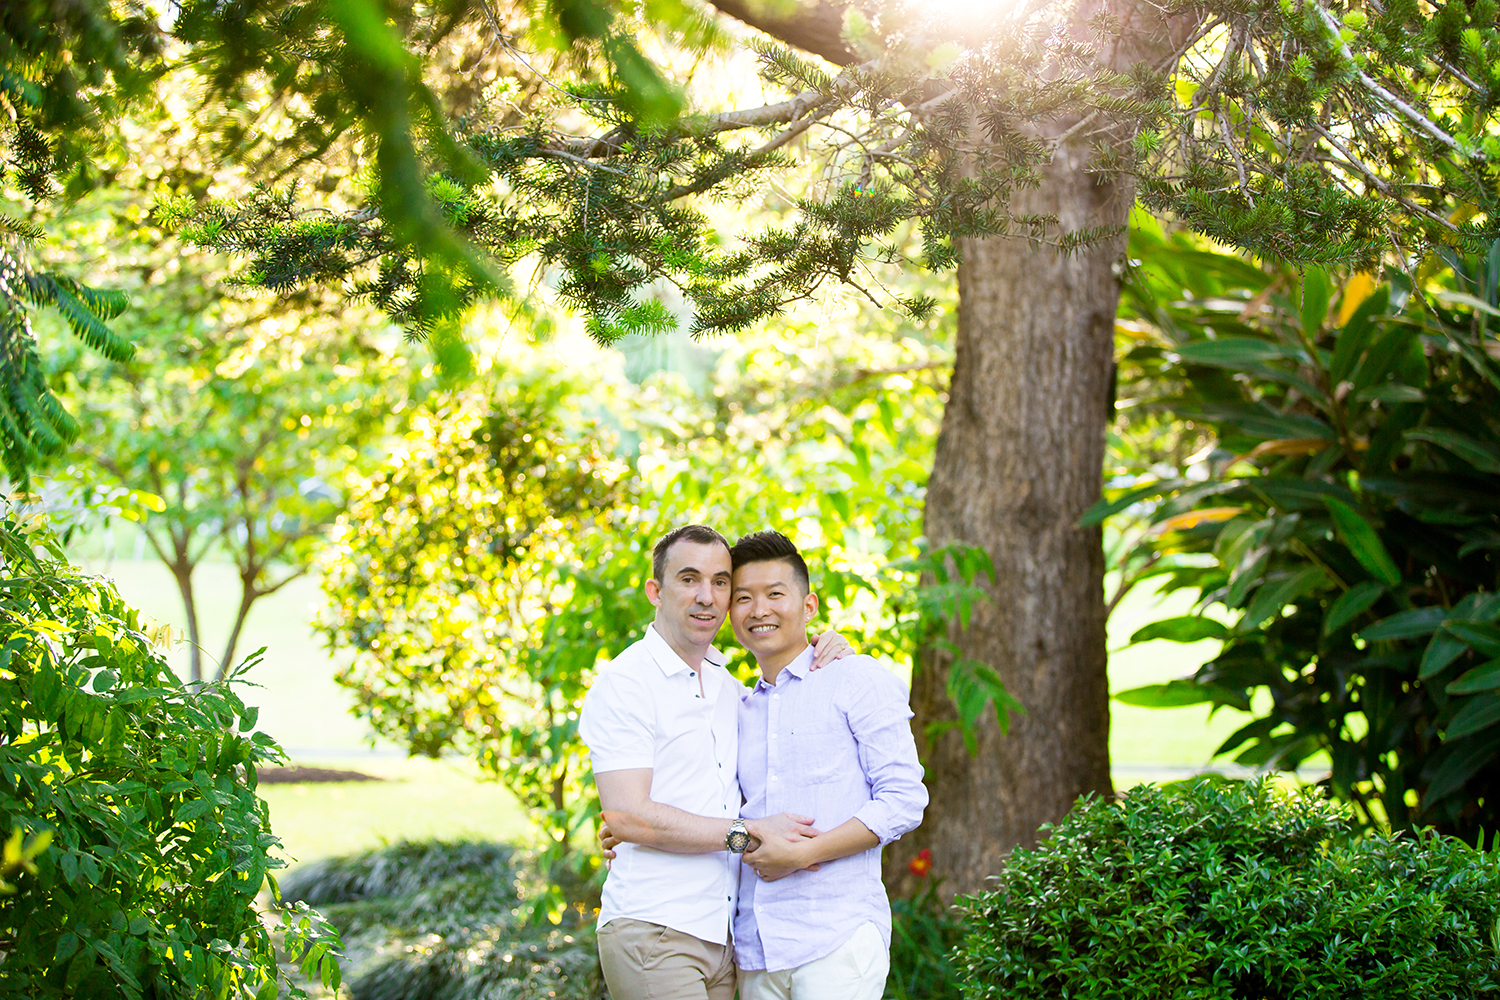 Sydney Gay Wedding Photographer - Jennifer Lam Photography (12).jpg